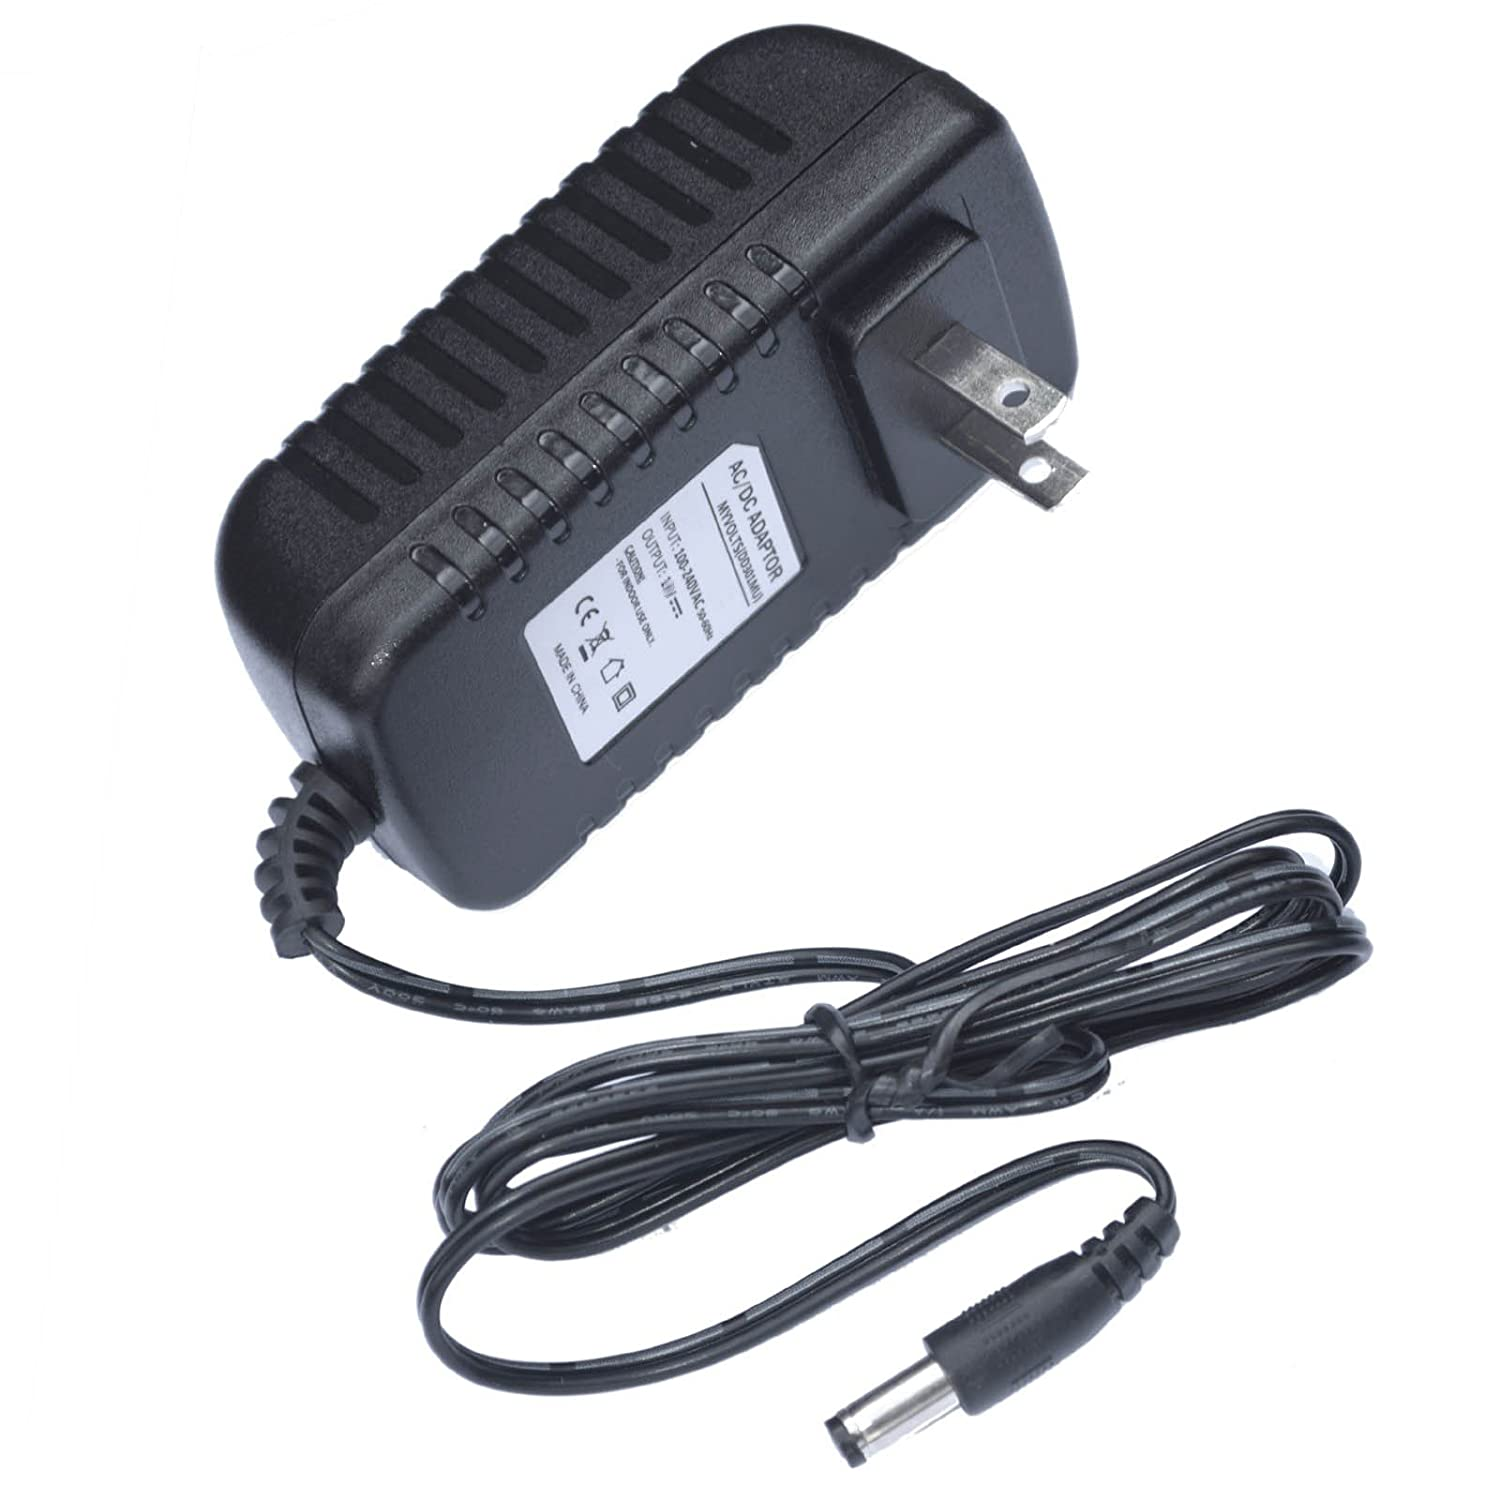 5V Snom 710 VoIP phone replacement power supply adaptor - US plug MyVolts